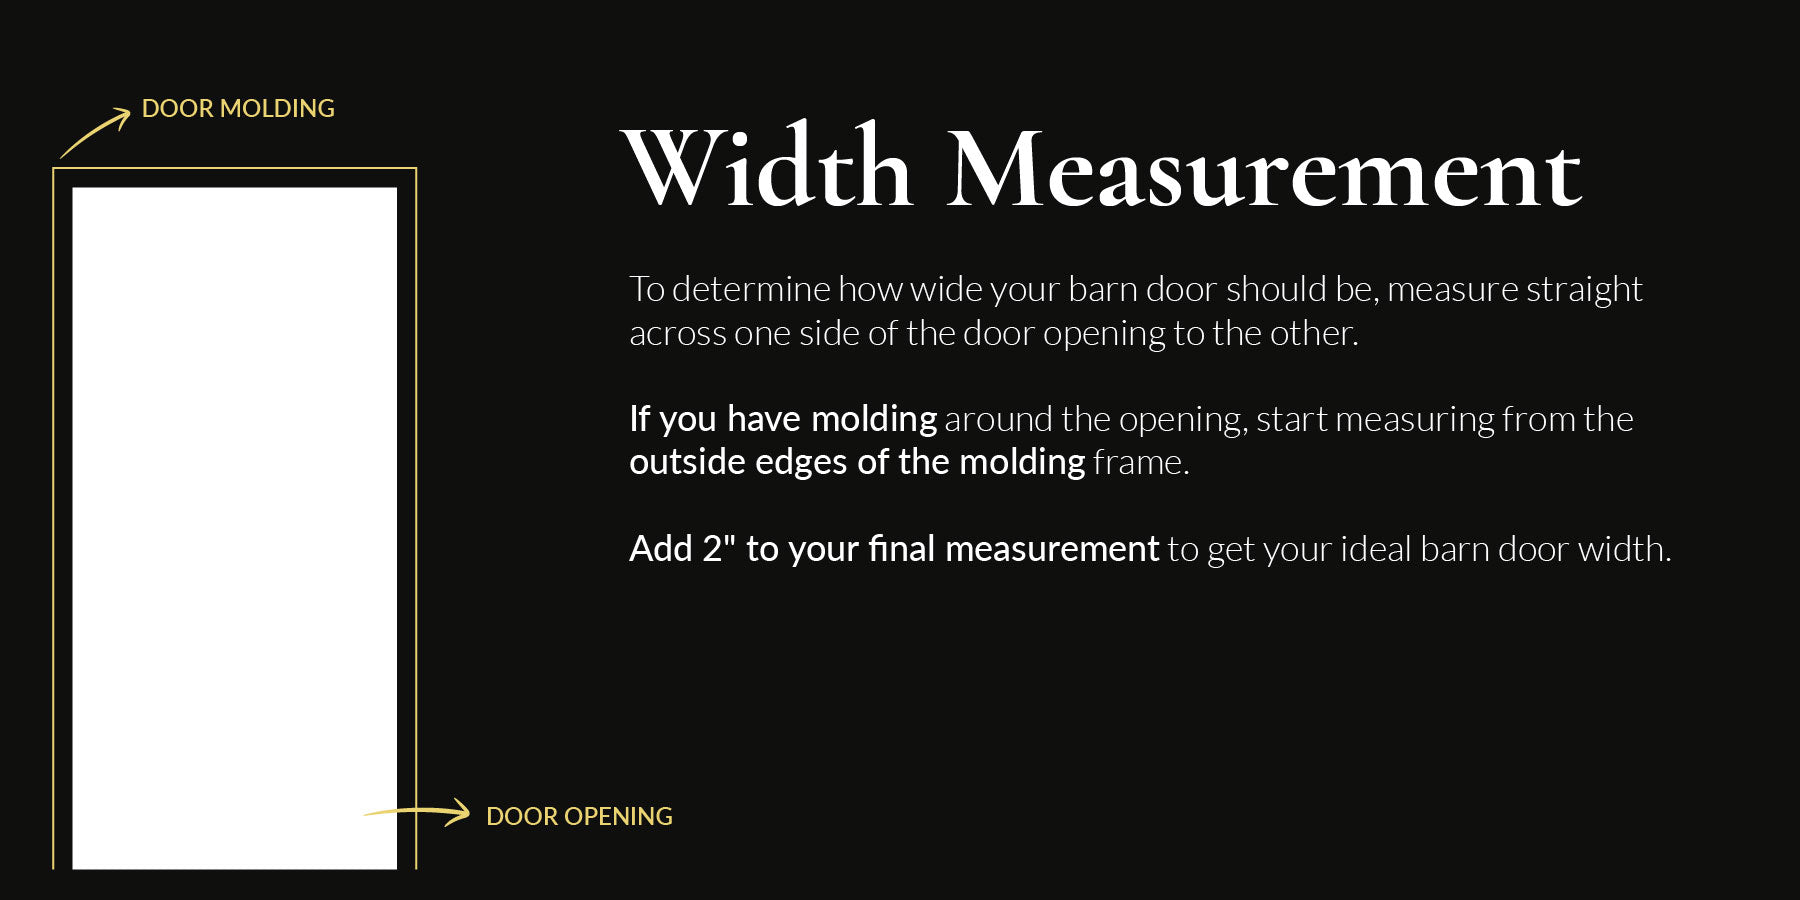 How to determine your barn door width illustration on a black background. The text on the image is the same as the text below it.